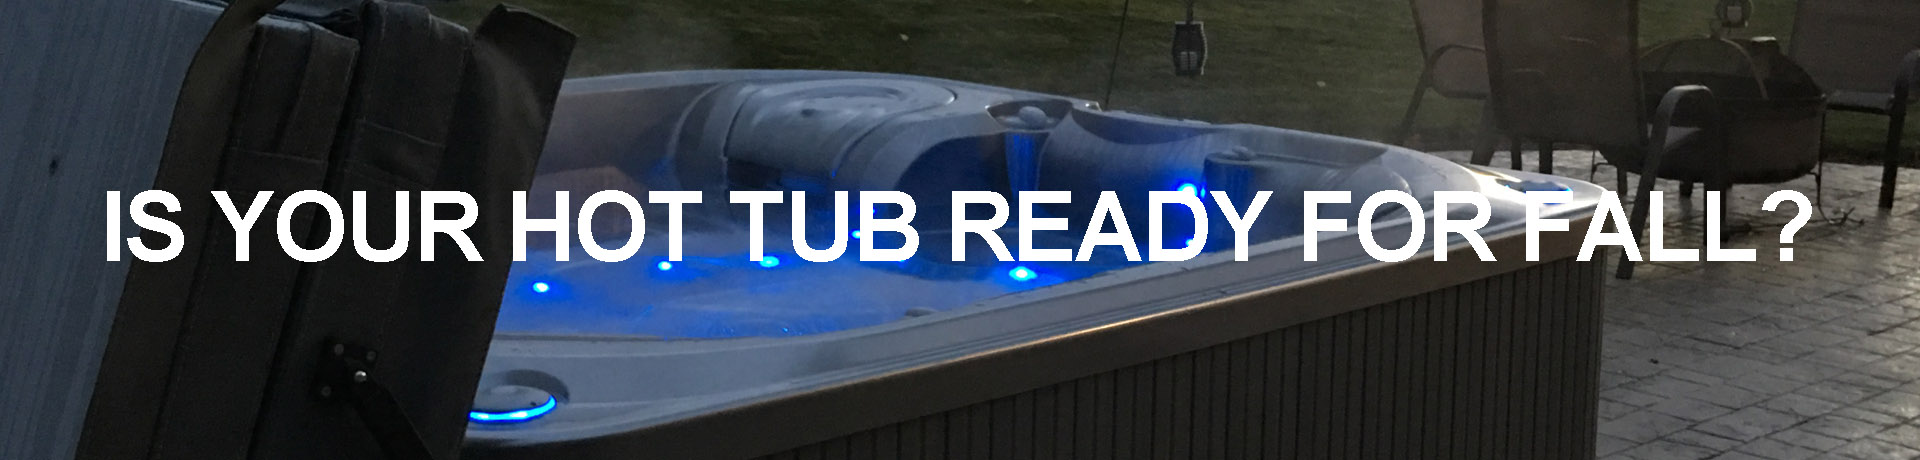 hot tub ready for fall